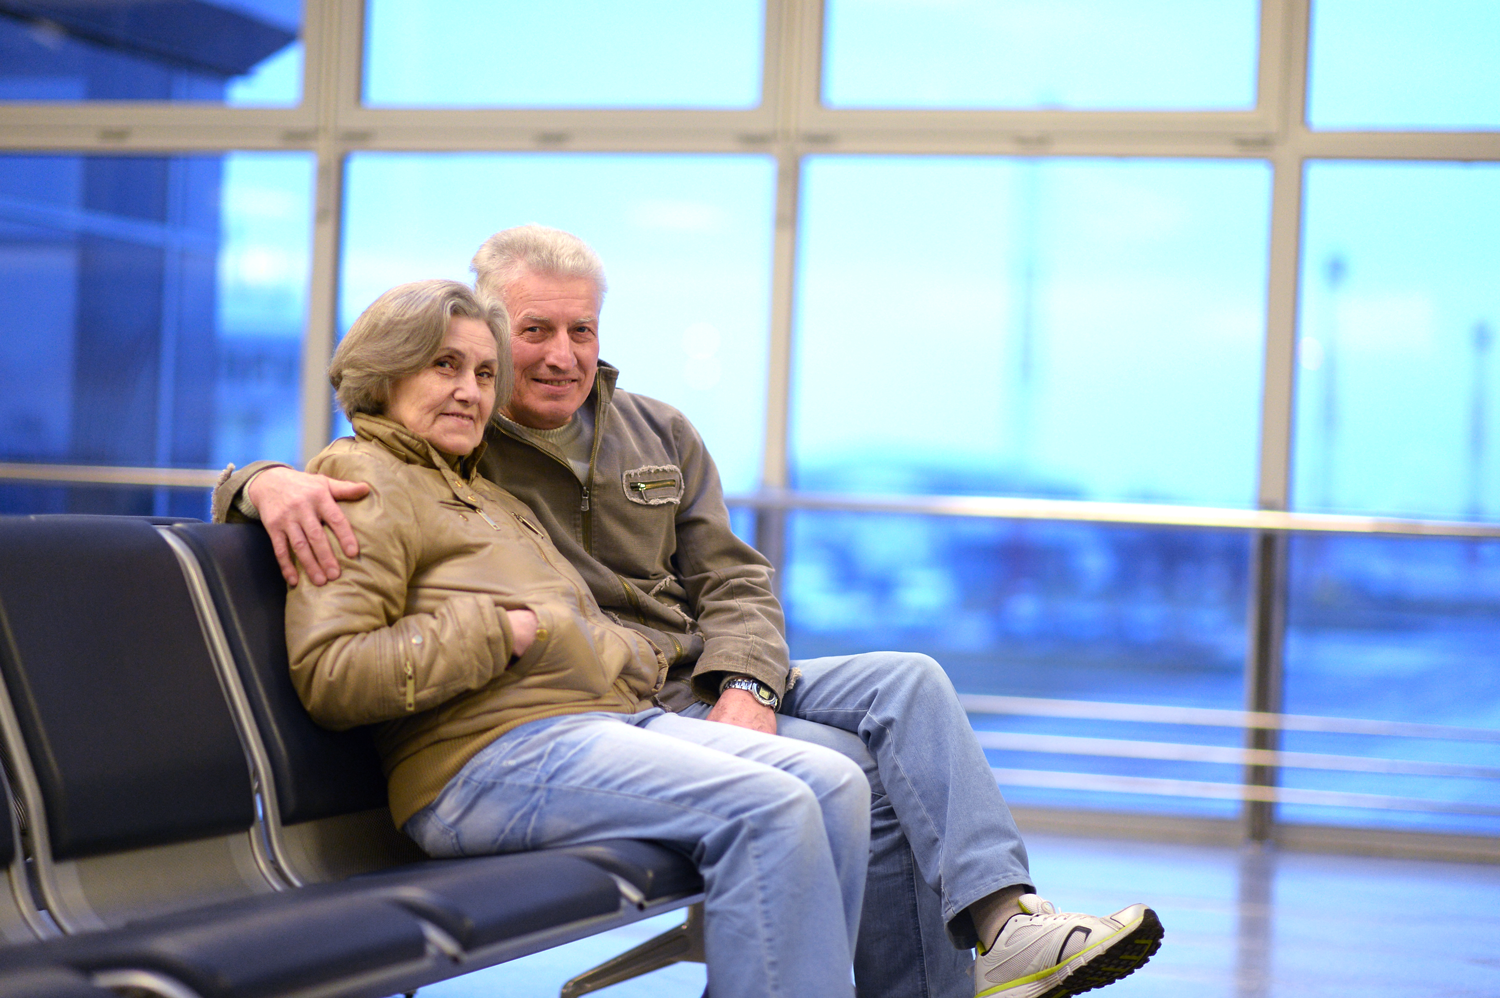 Tips for Traveling with Seniors